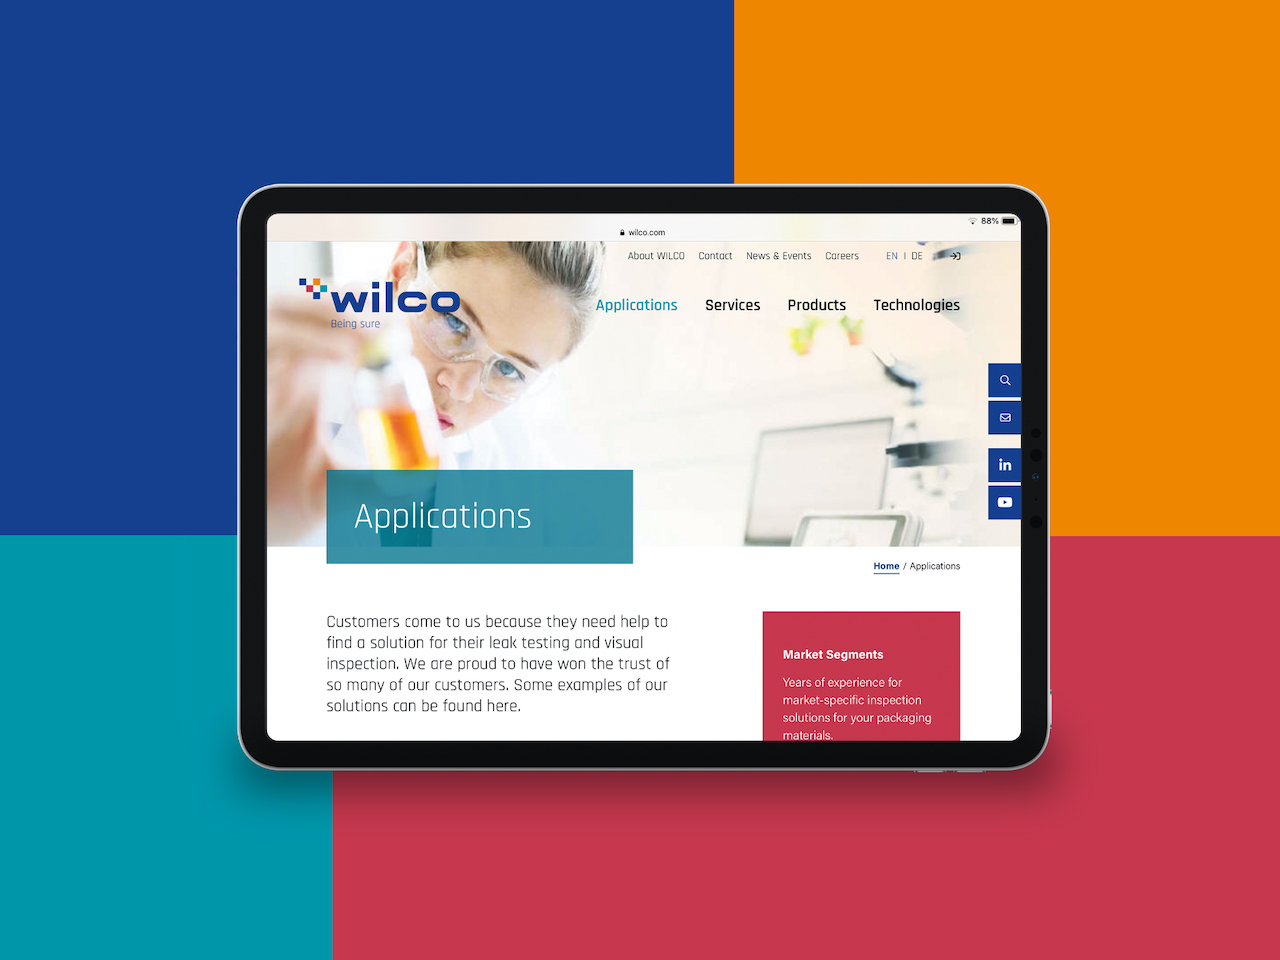 evoq_WILCO_Website_Applications_Tablet